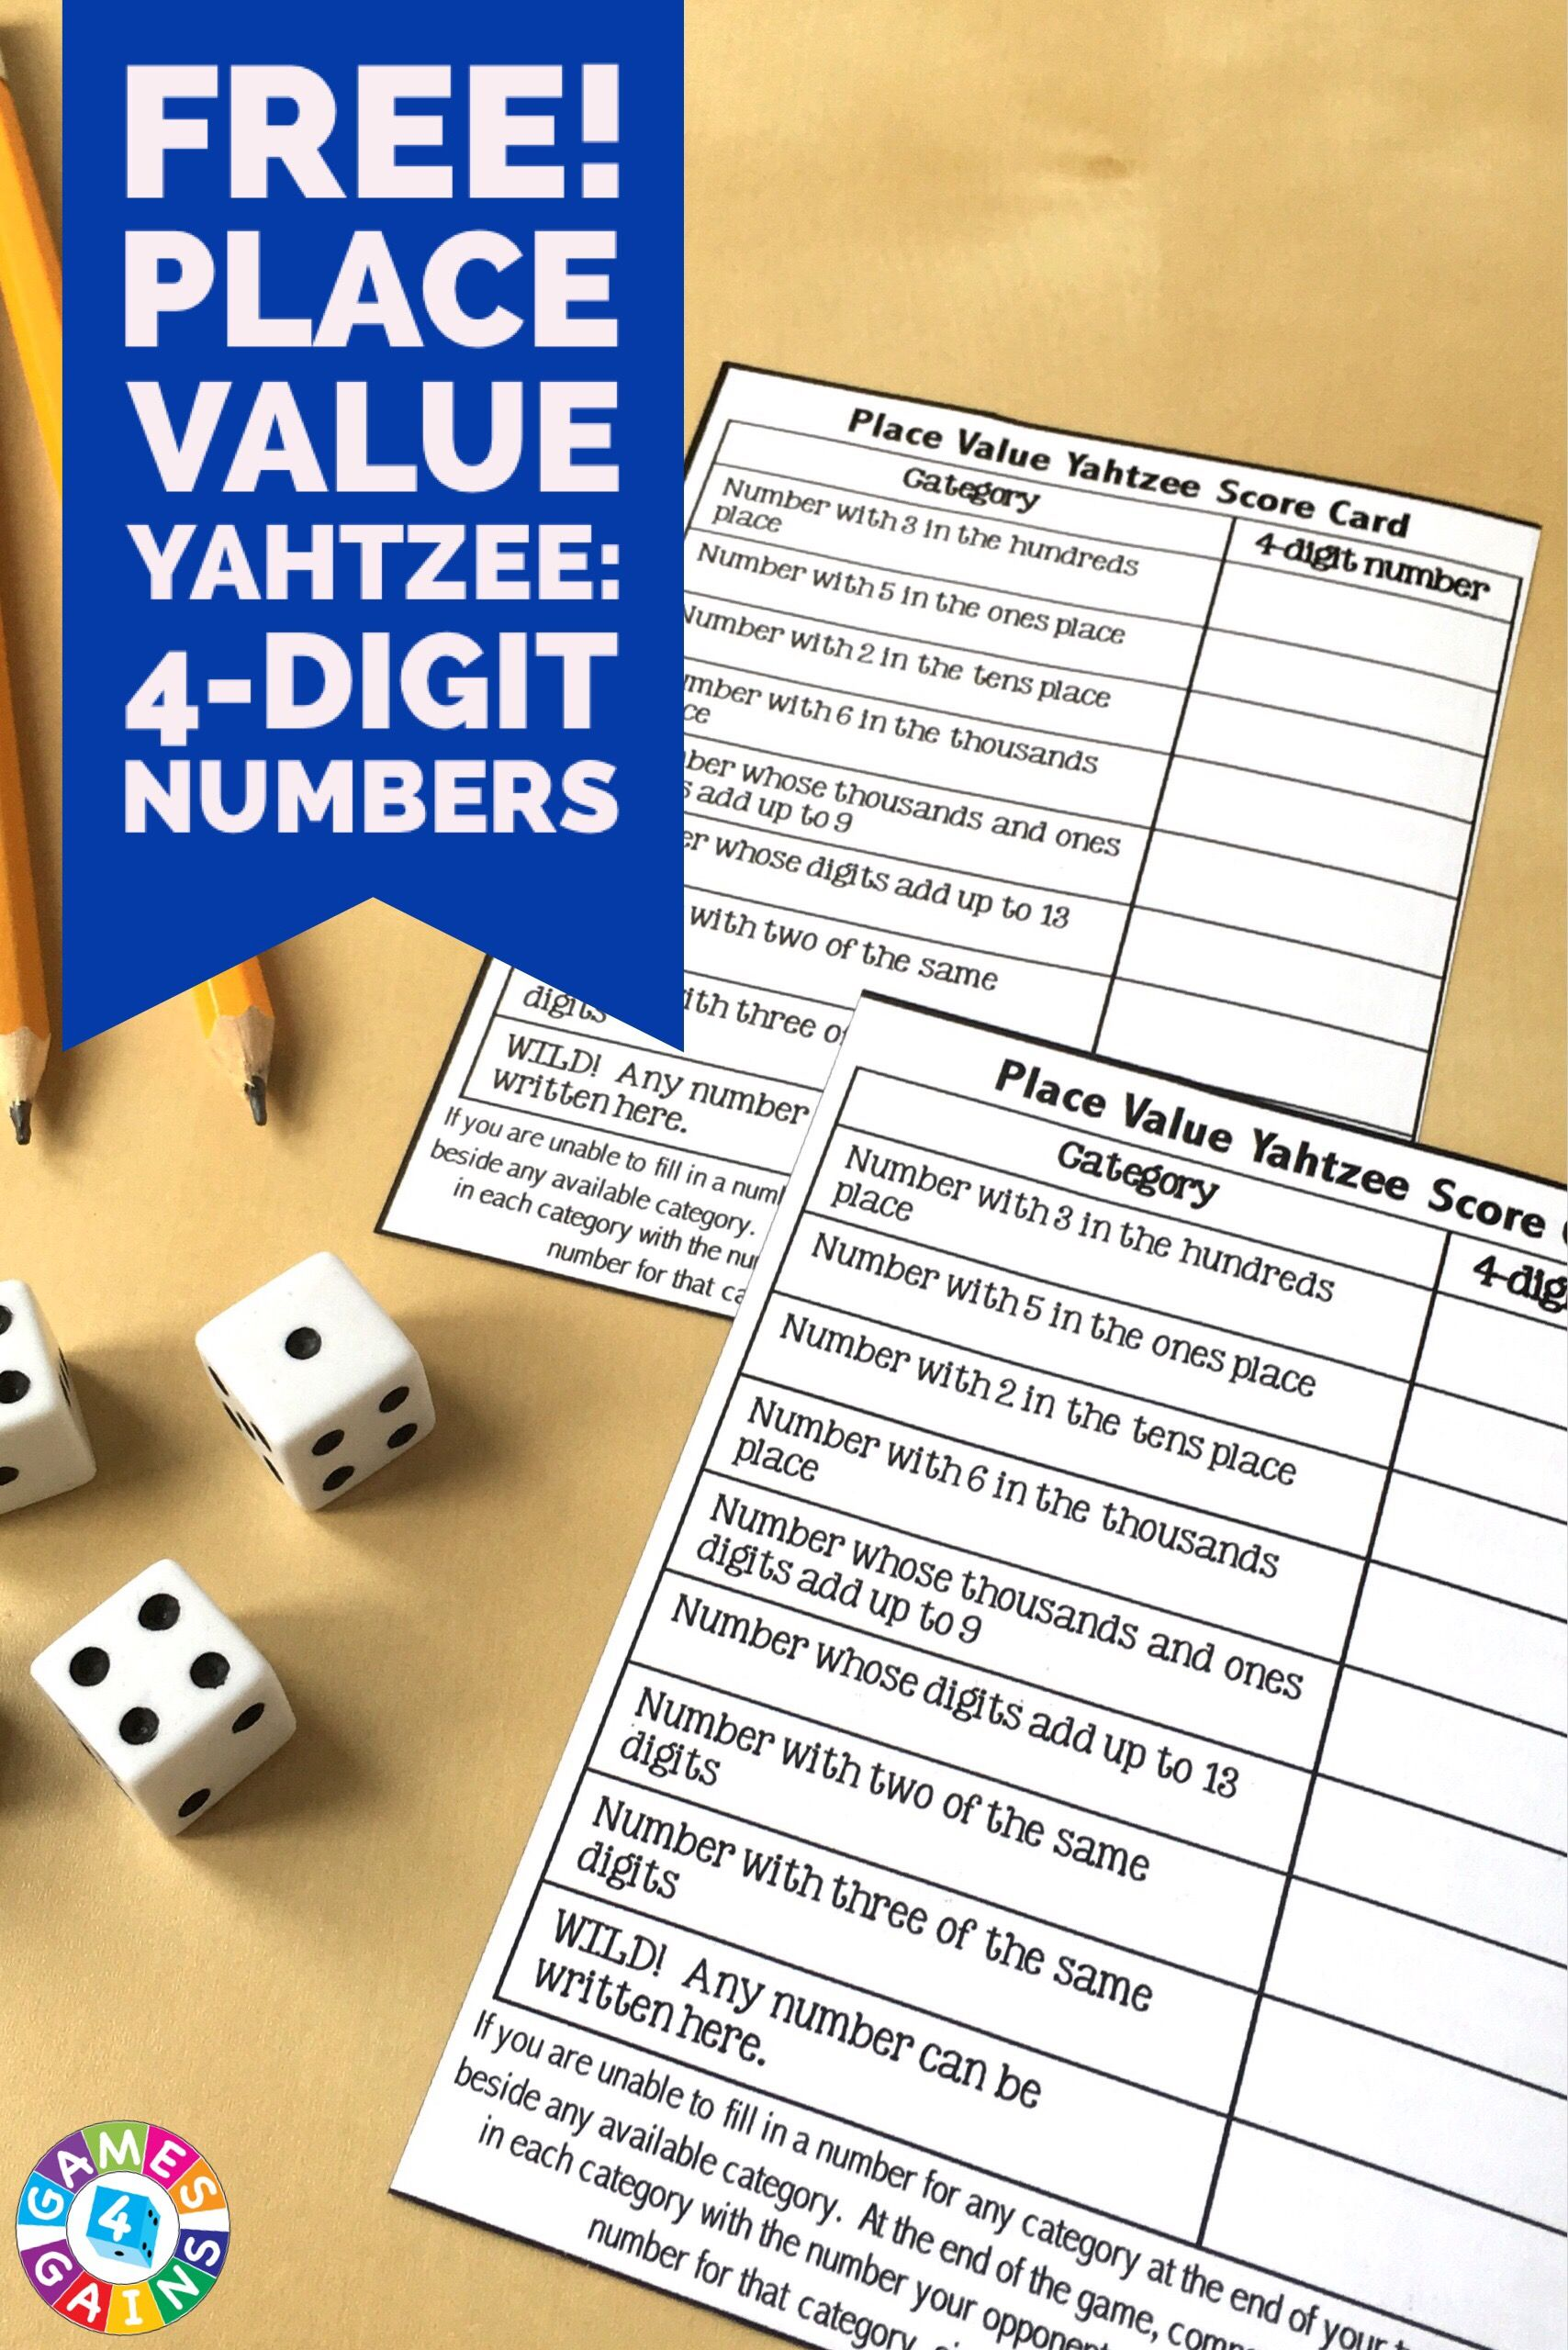 Score Some Points With Place Value Yahtzee With Images